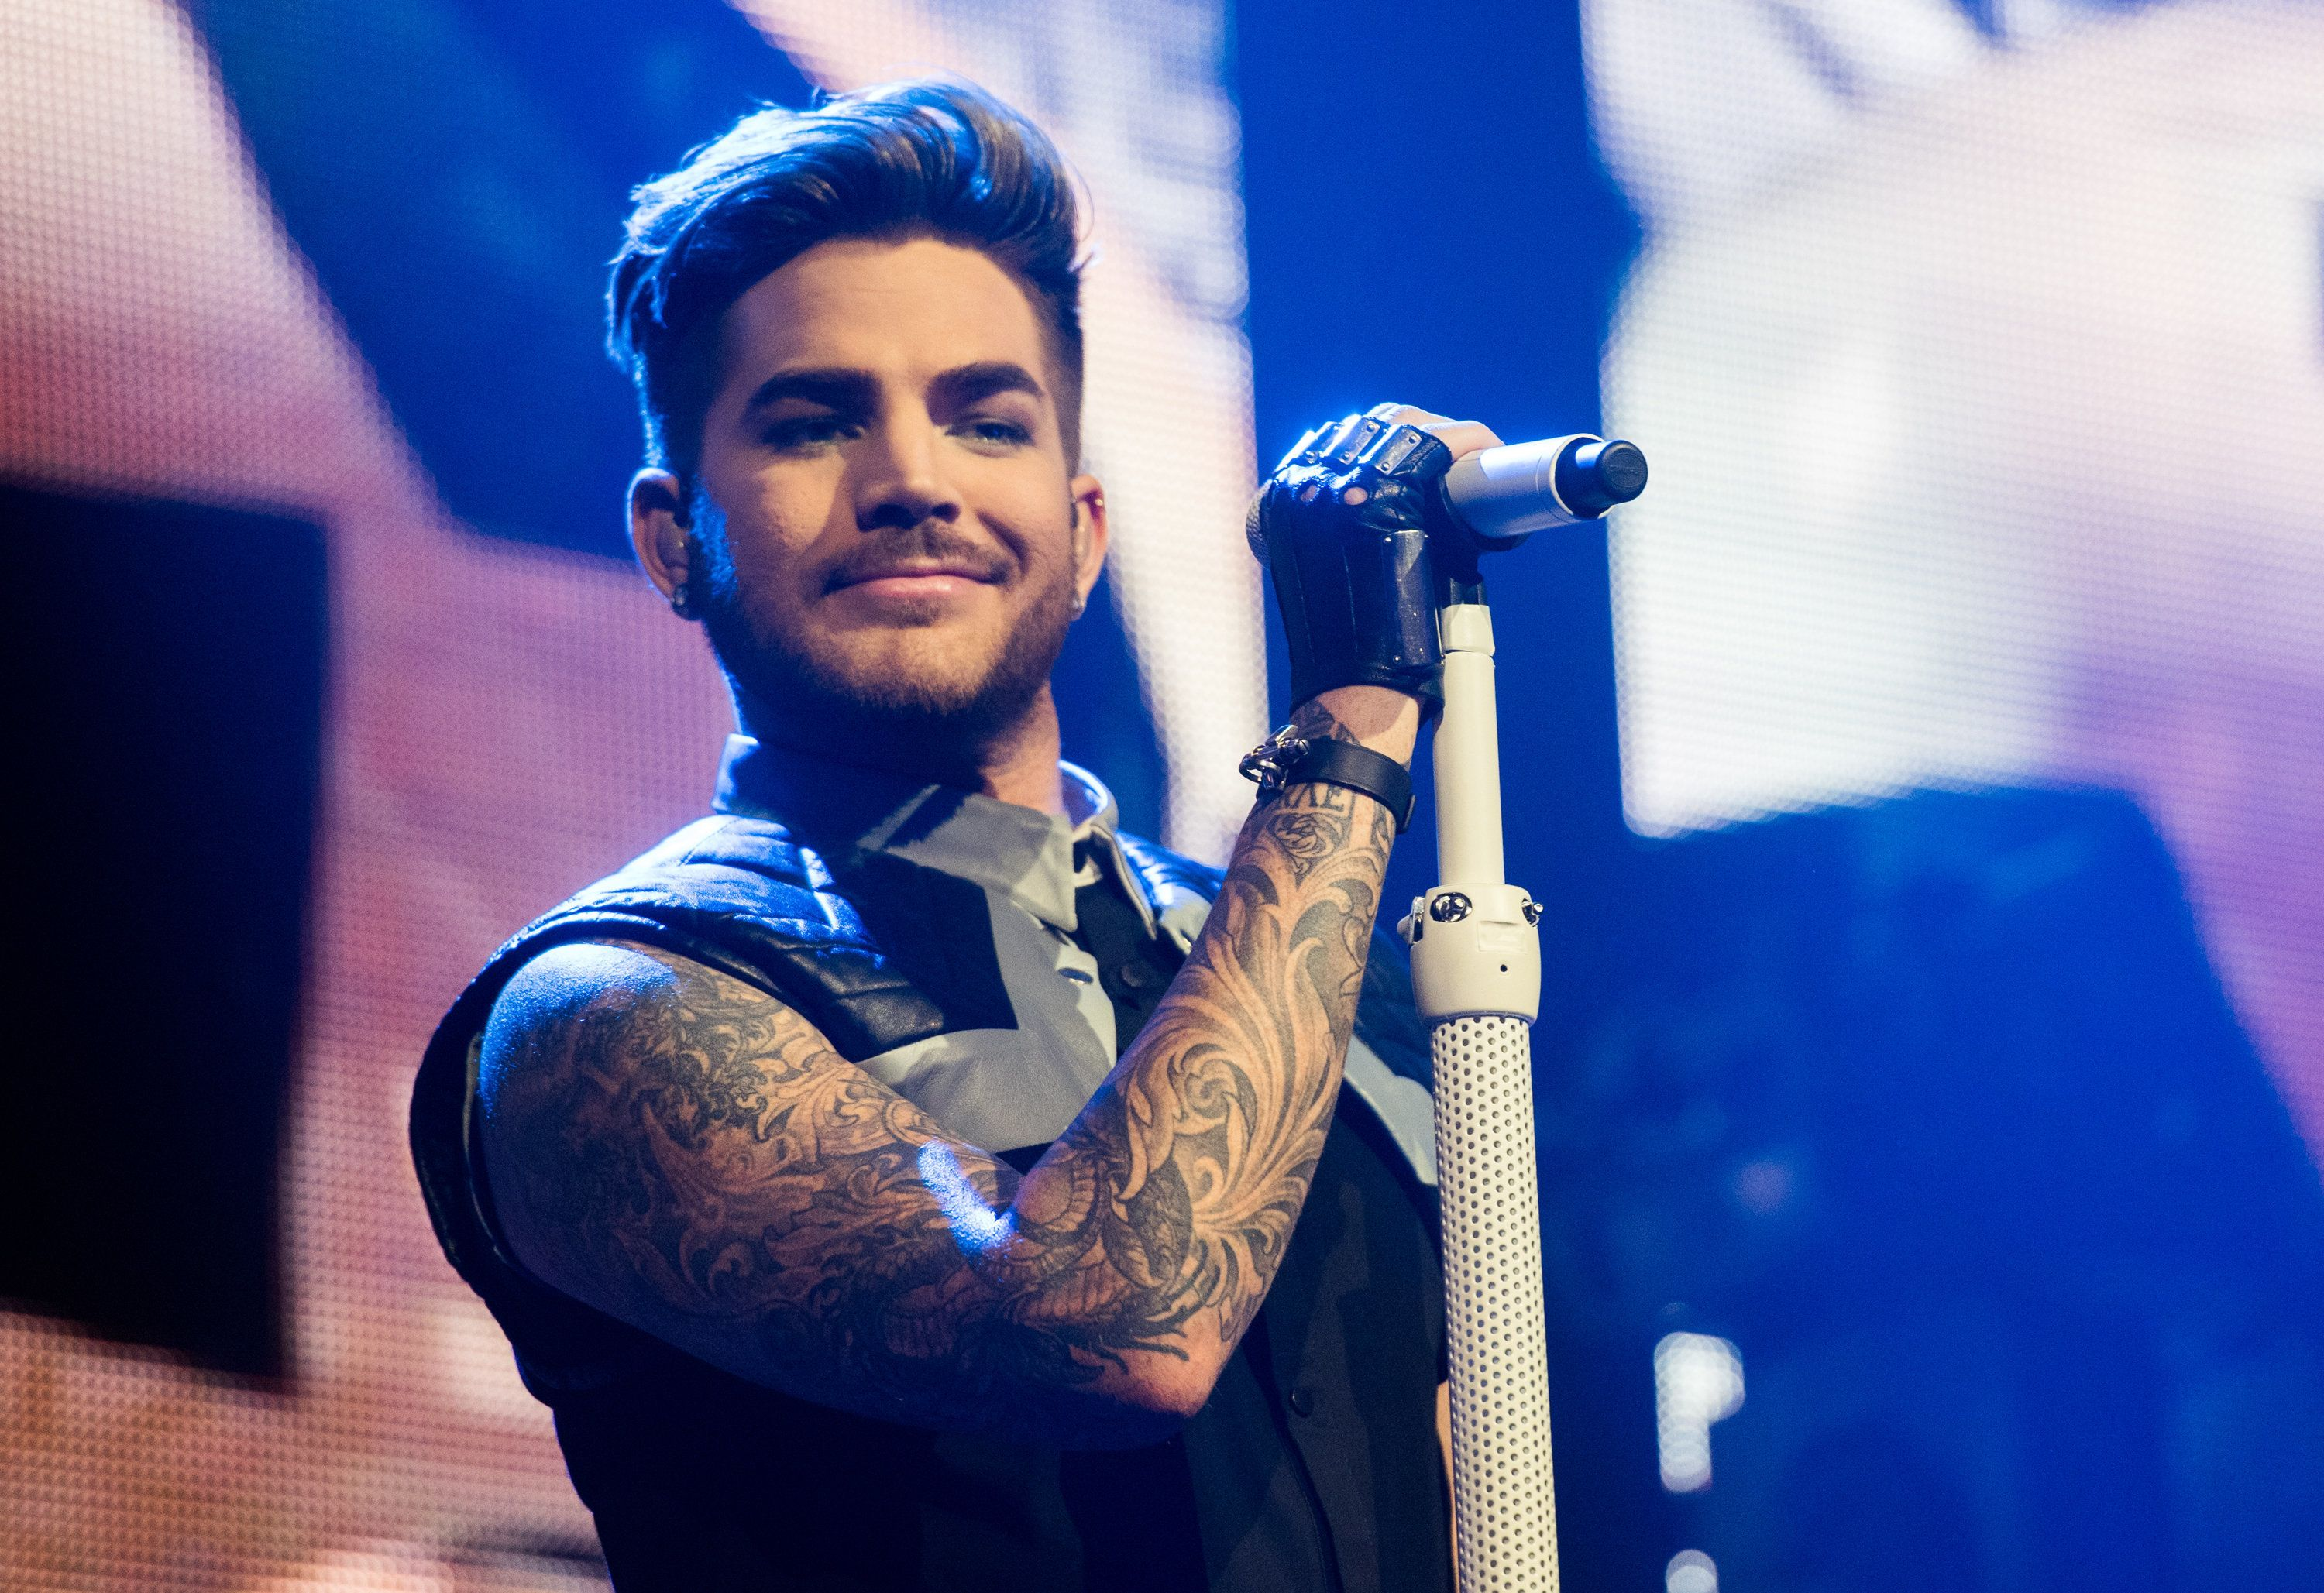 Adam Lambert was the first openly gay artist to have an album debut at the top of the US Billboard